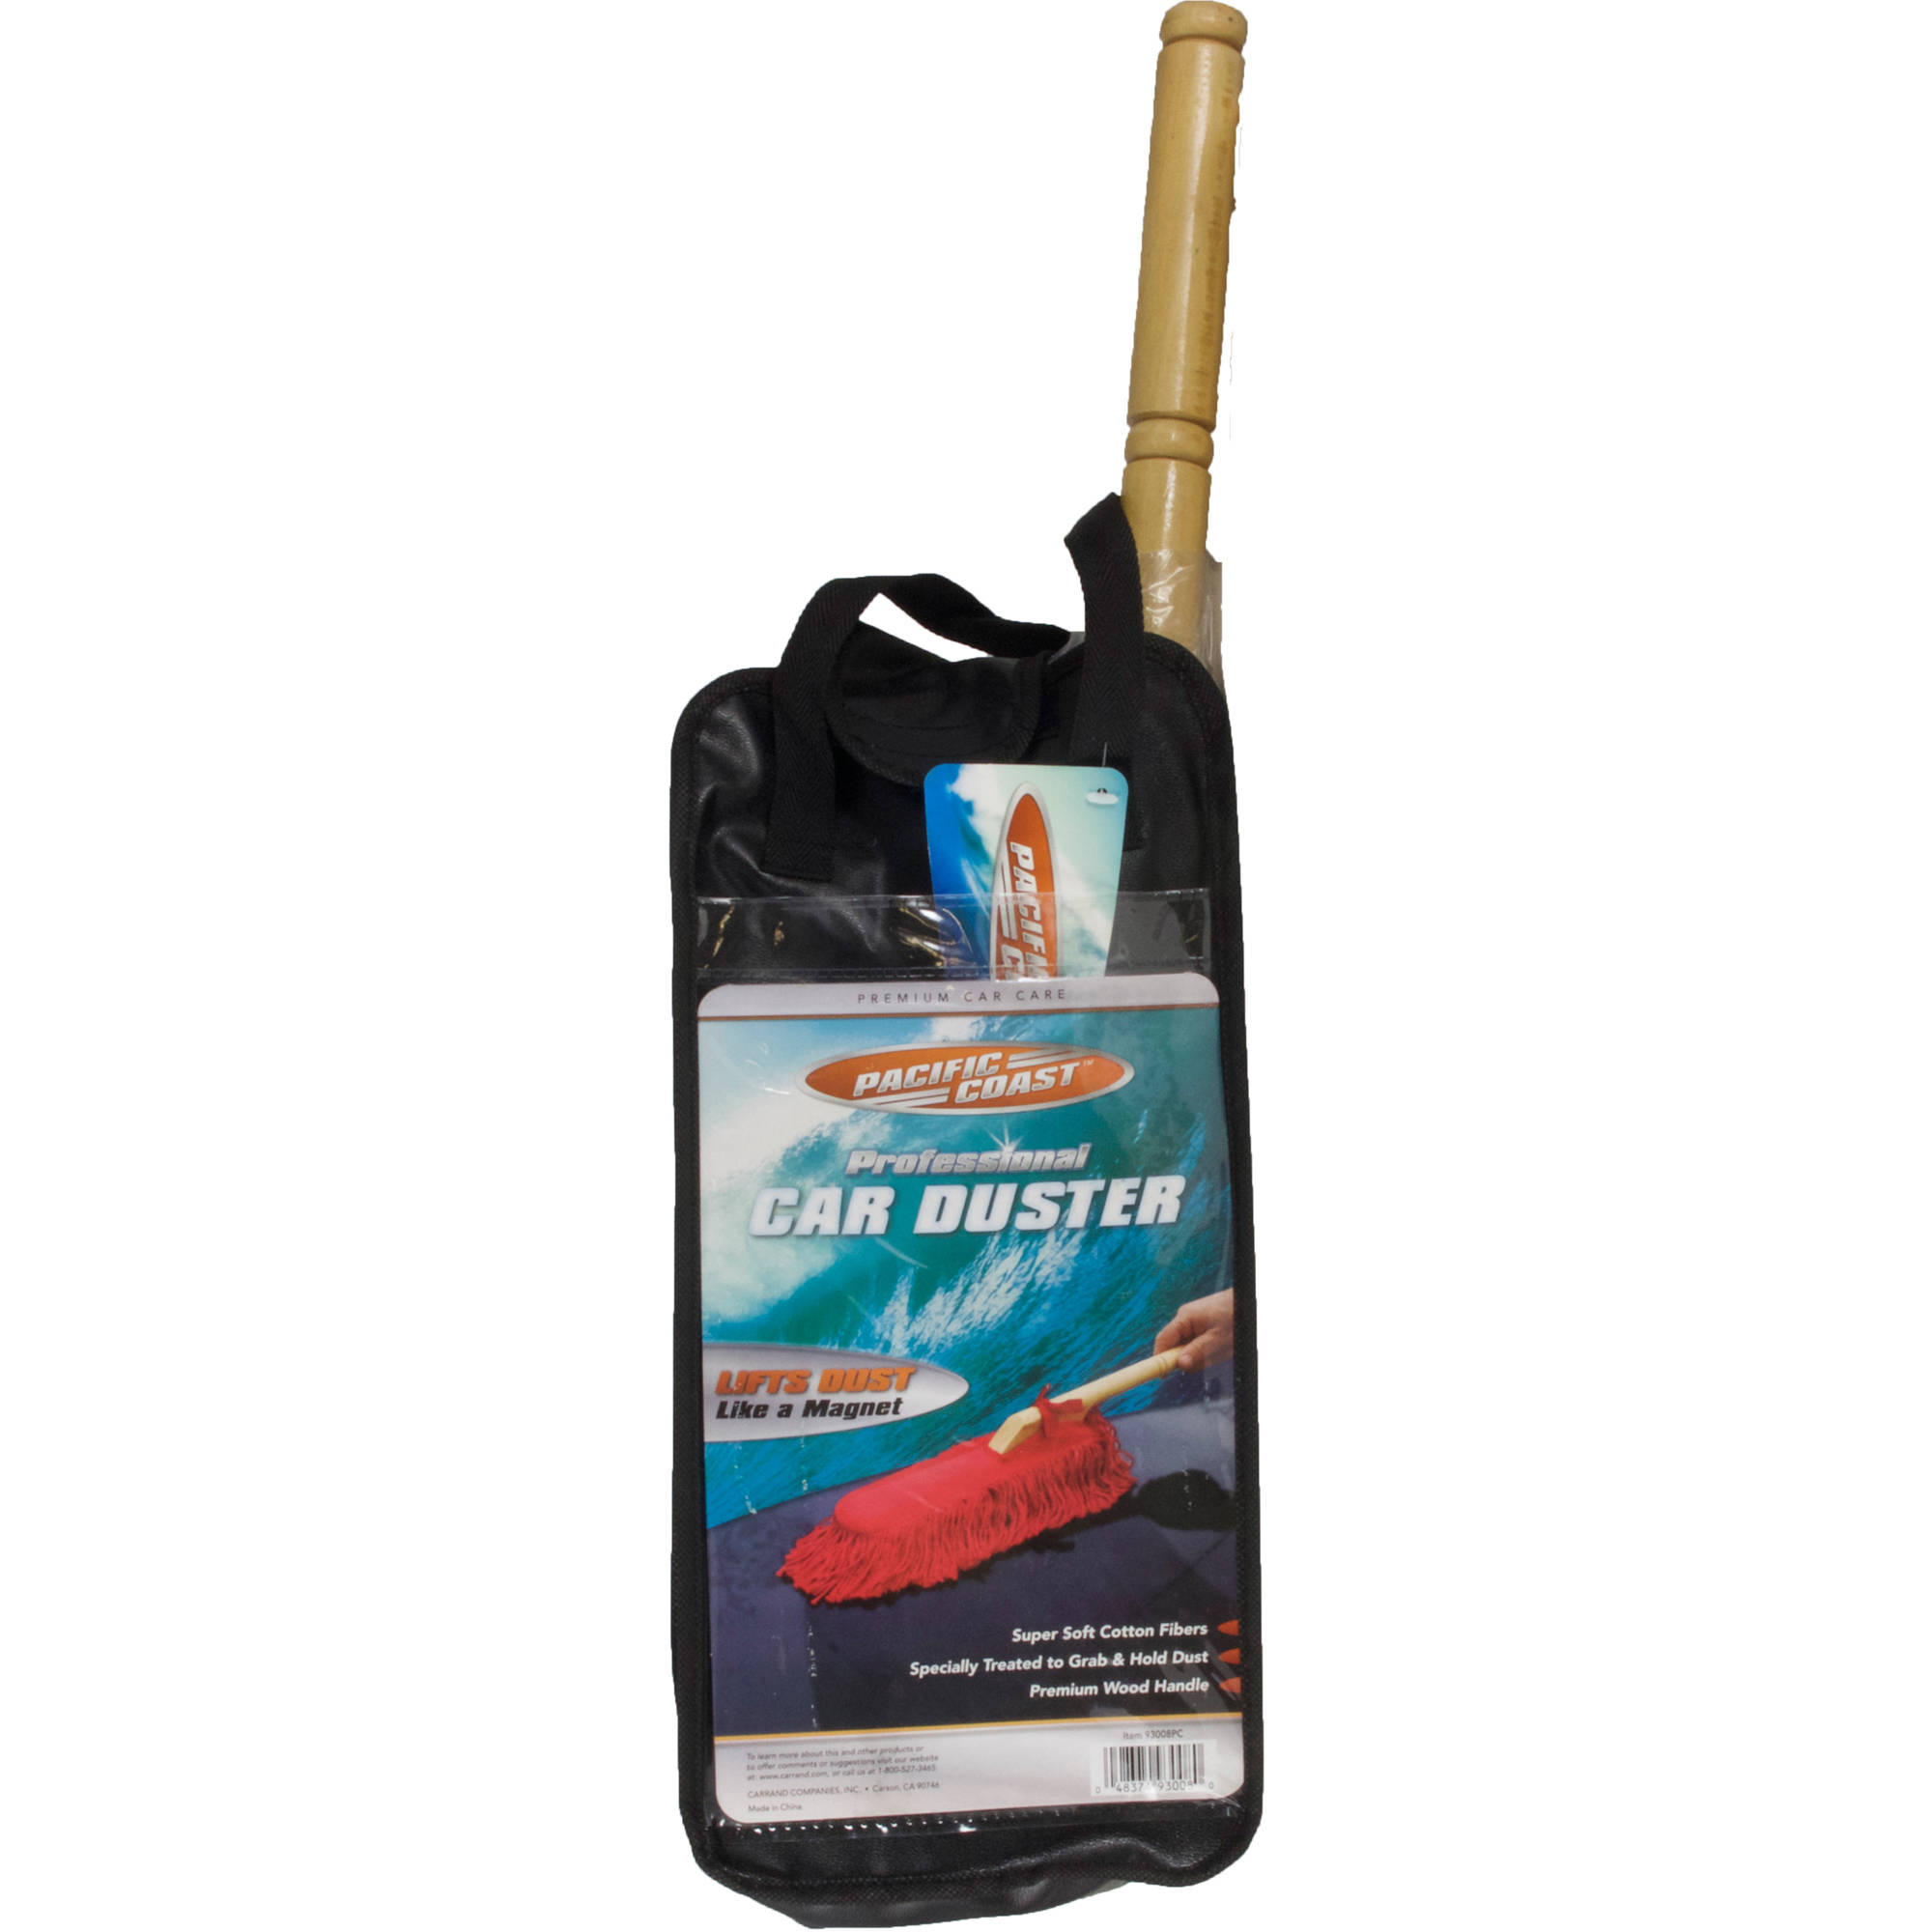 Professional Car Duster with Wood Handle